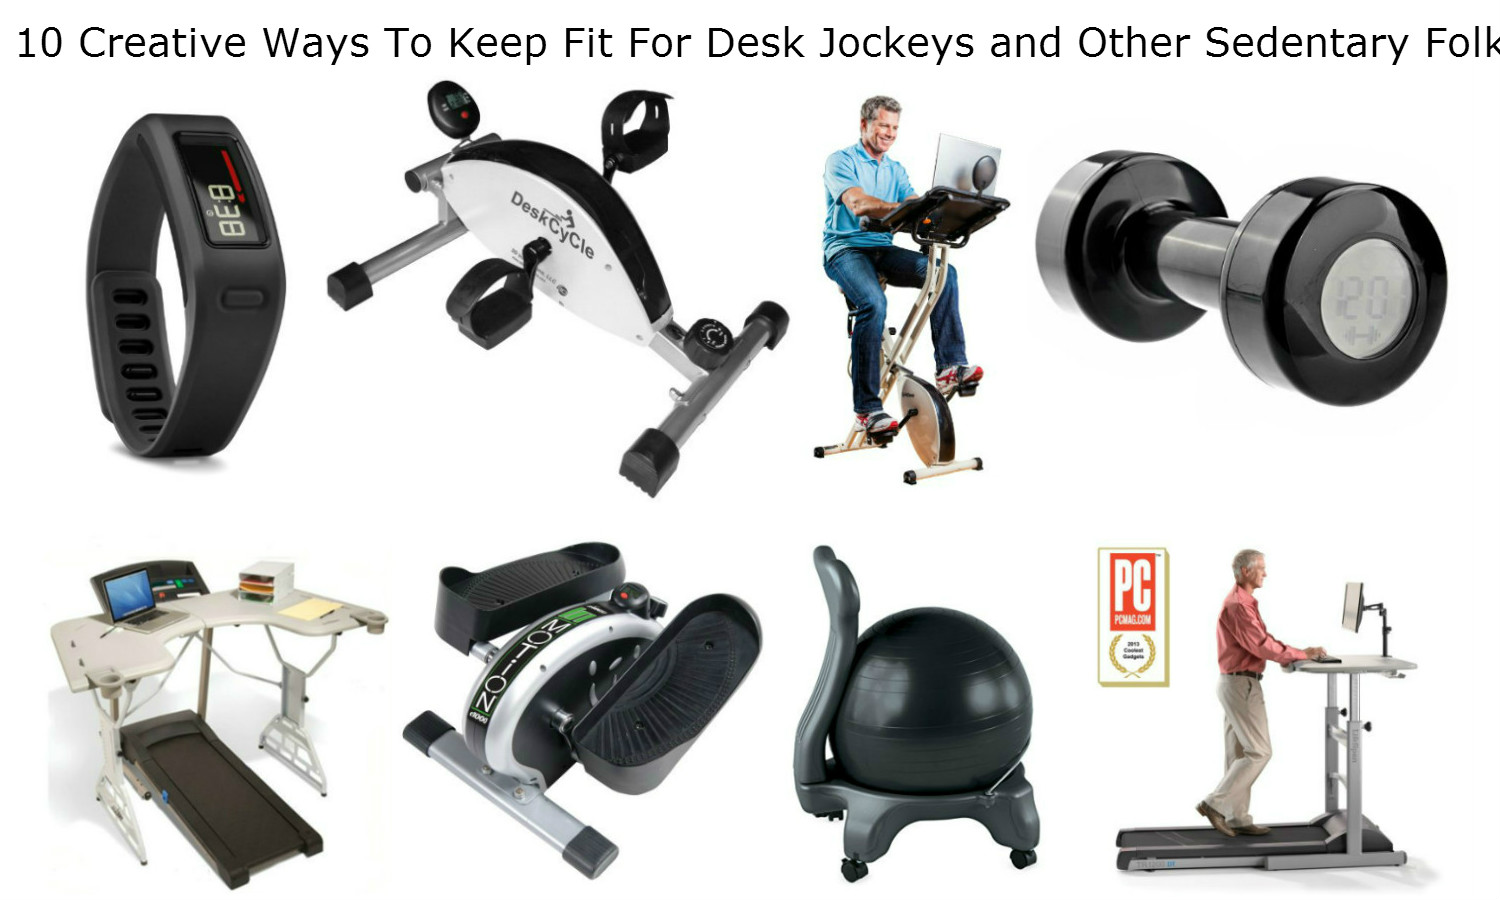 chair gym exercise book leather sling 10 creative ways to keep fit for desk jockeys and other